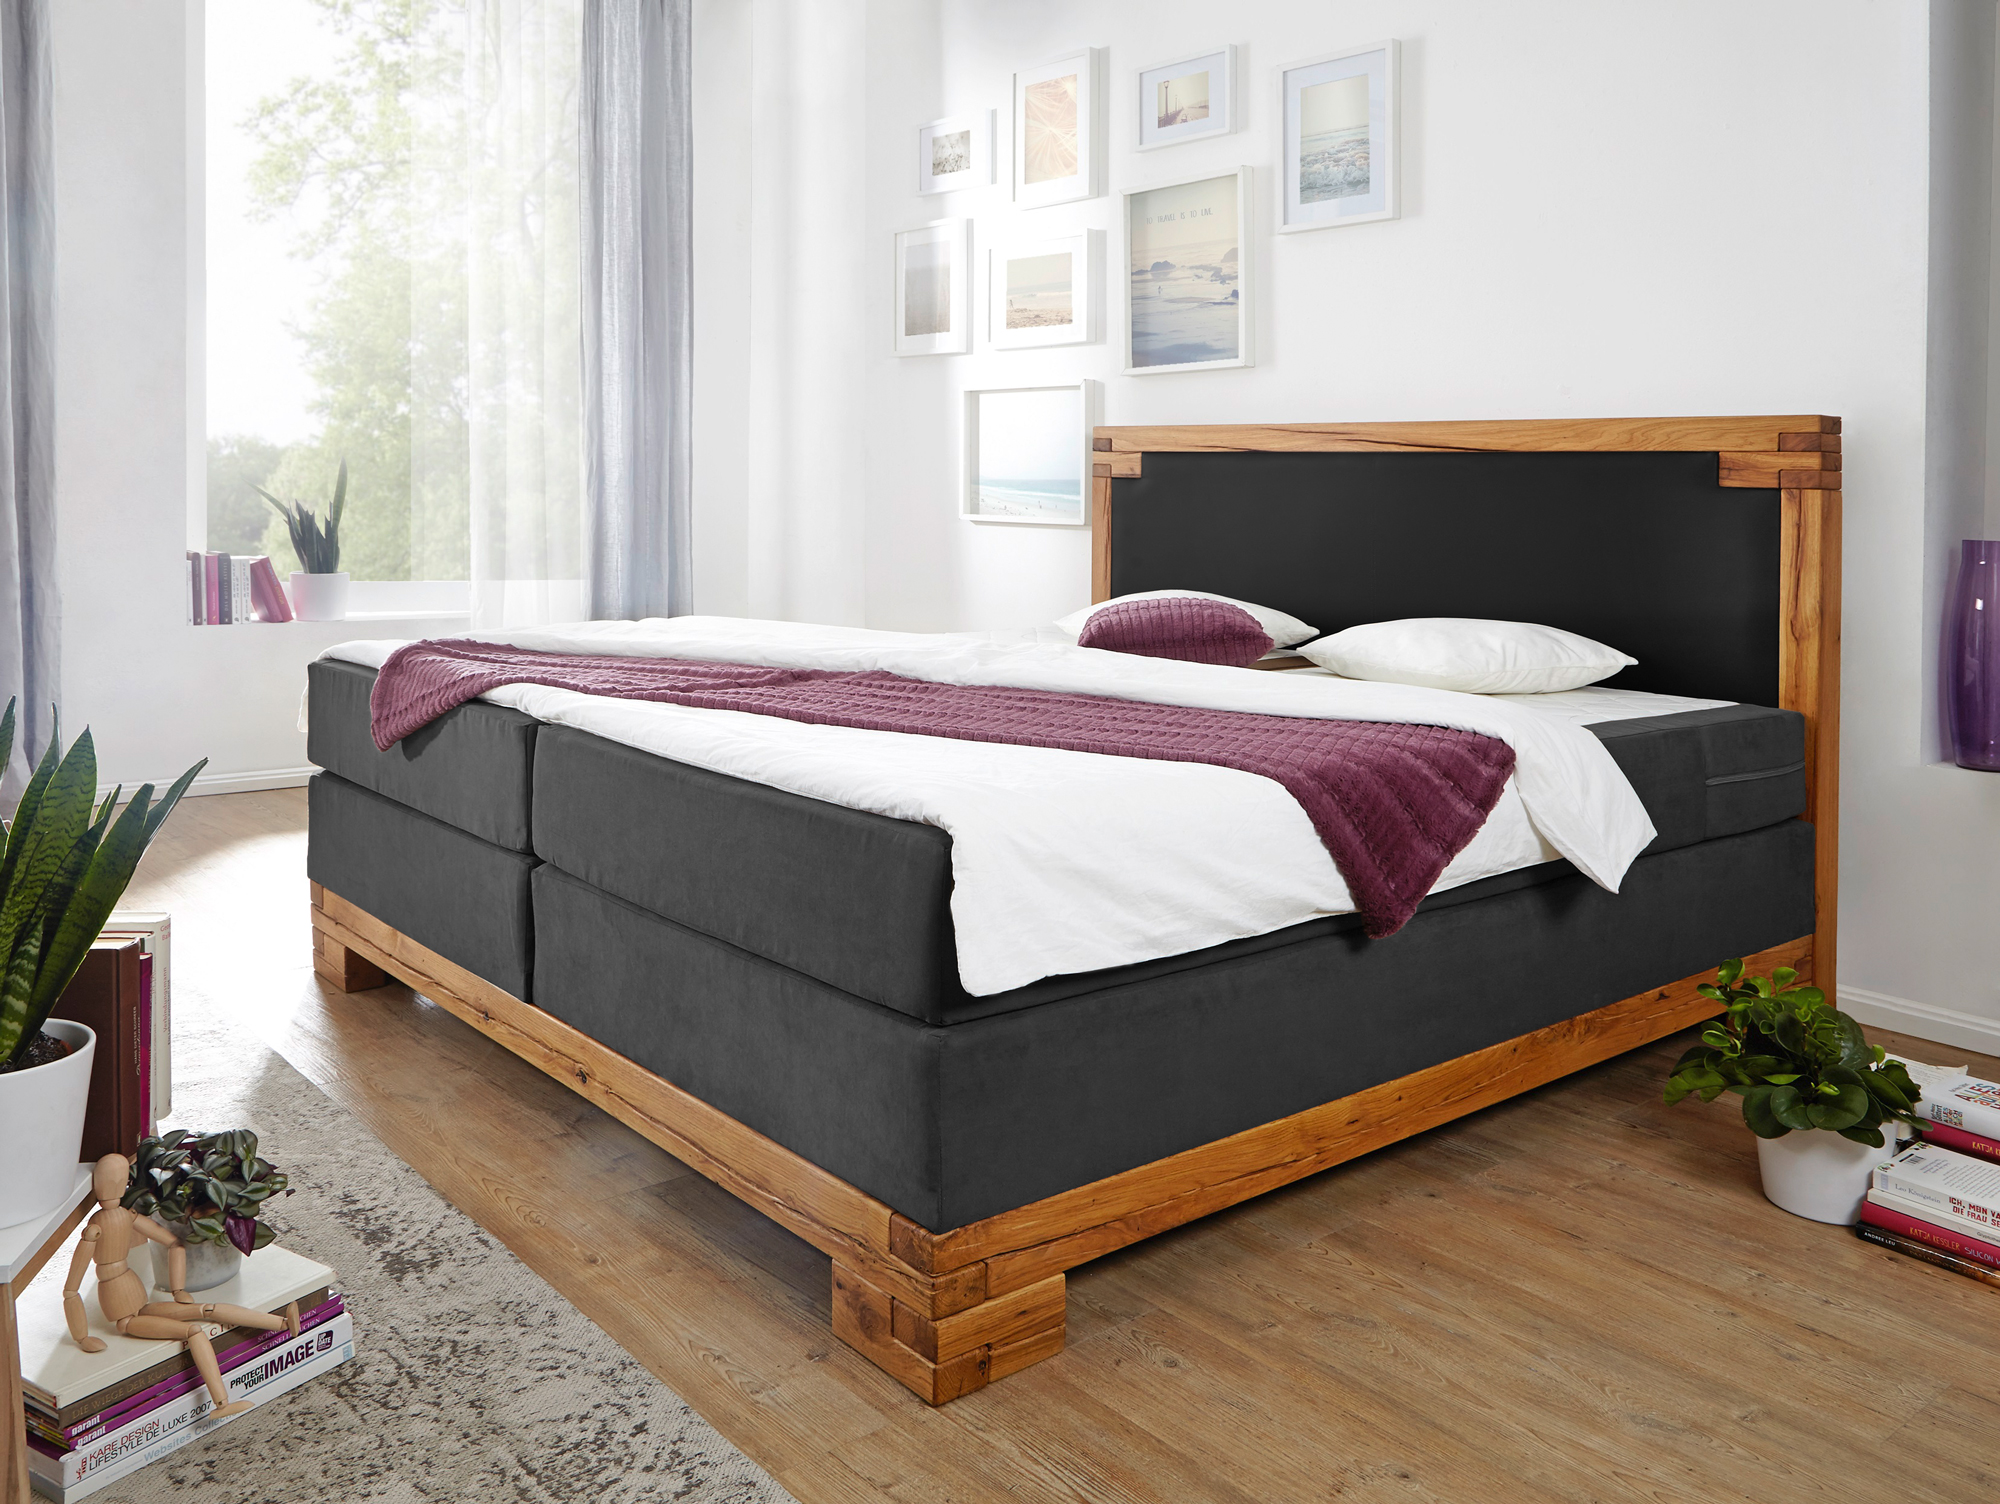 bellamie boxspringbett mit massivem holzrahmen 180 x 200 cm. Black Bedroom Furniture Sets. Home Design Ideas